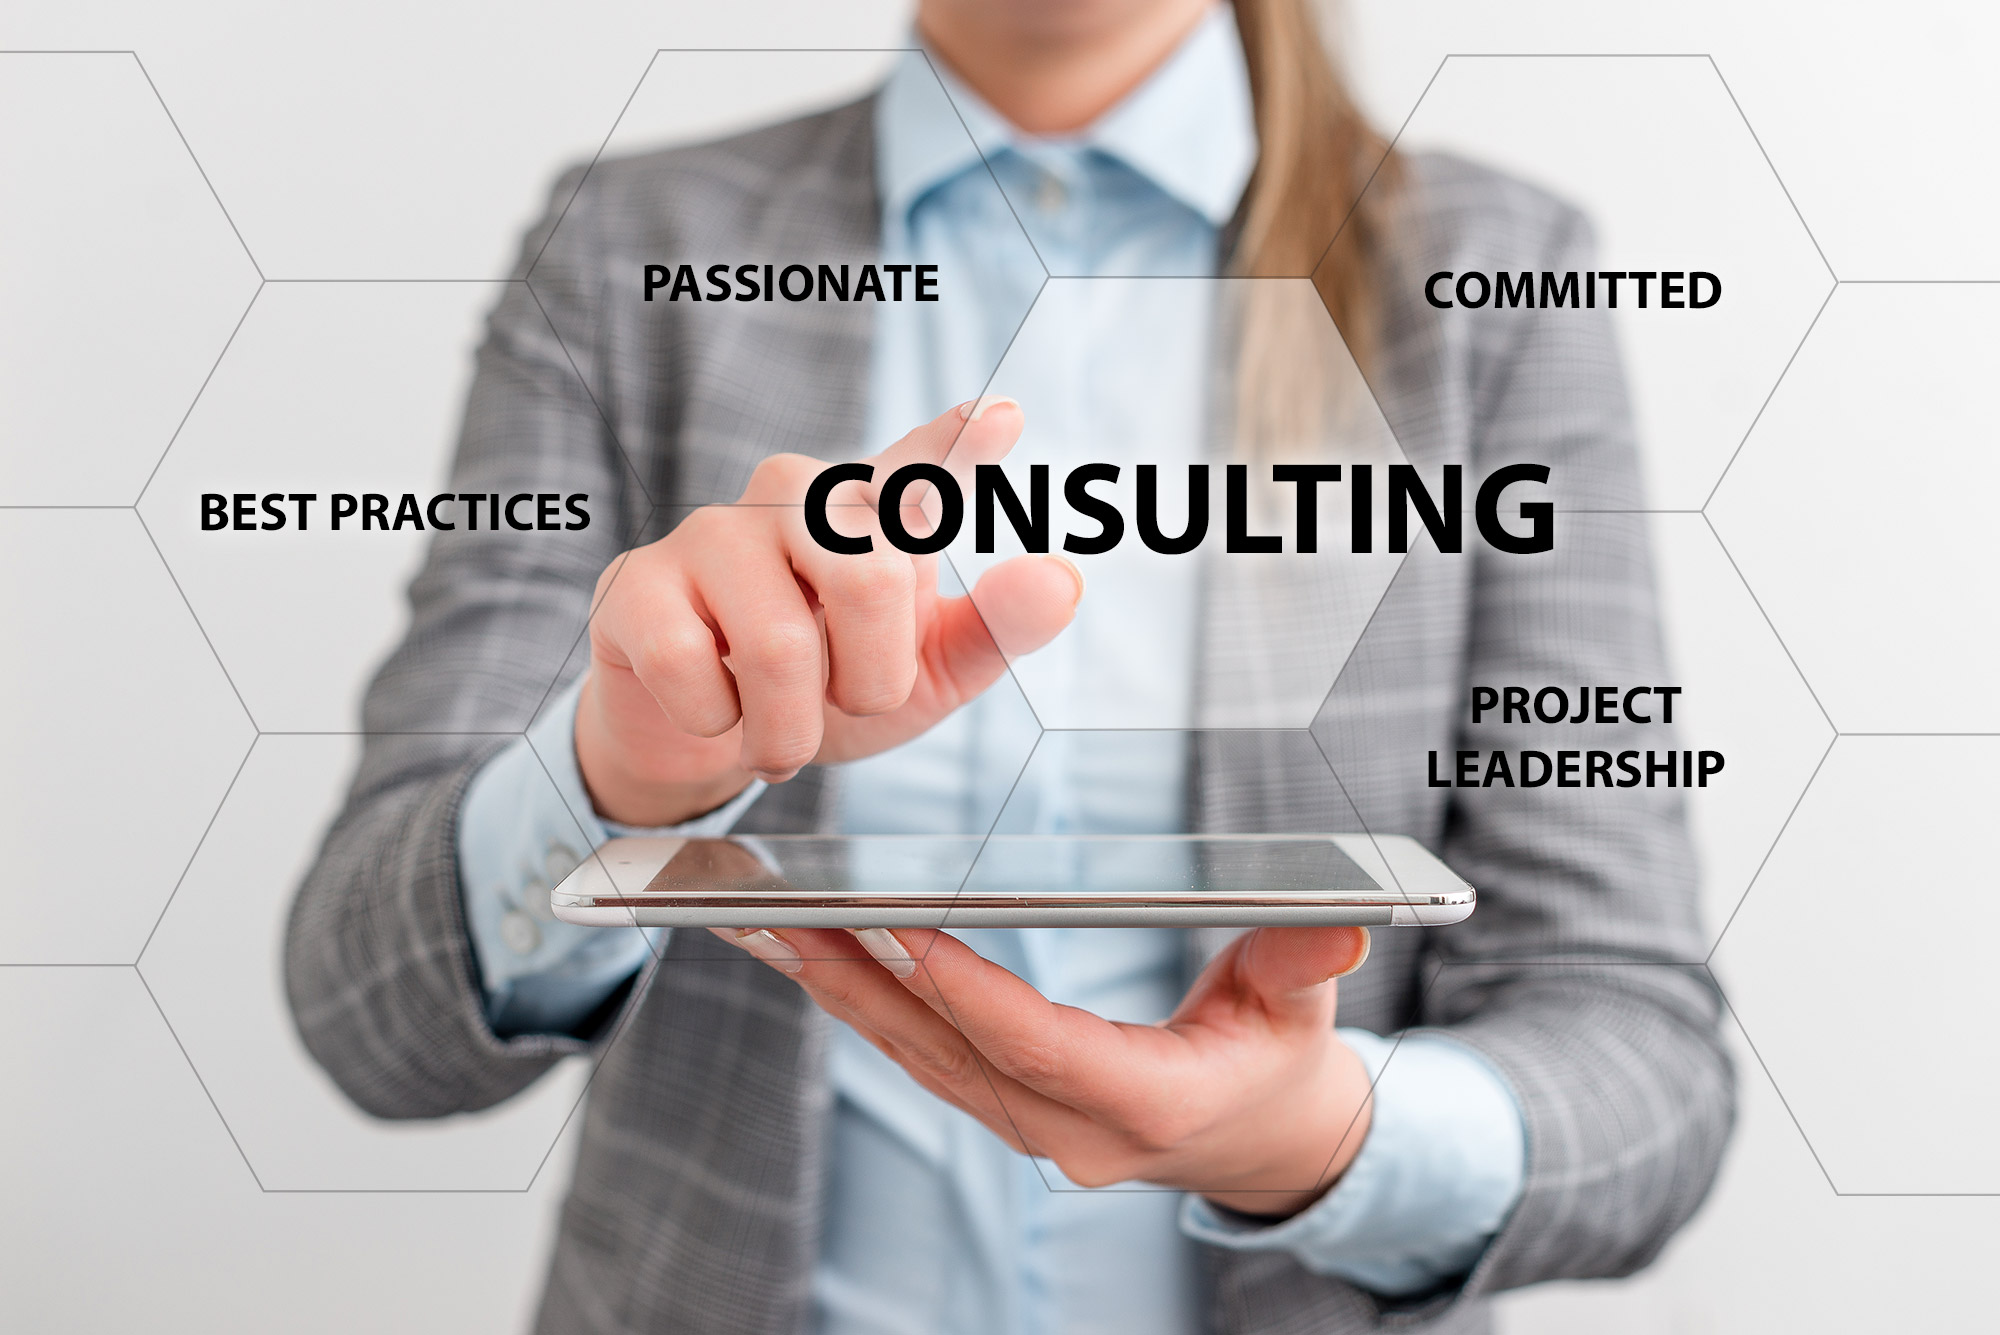 business consulting services, healthcare consultants, electronic visit verification, evv, technology implementation, client management, account management, contract management, project management, best practice review, operationalization